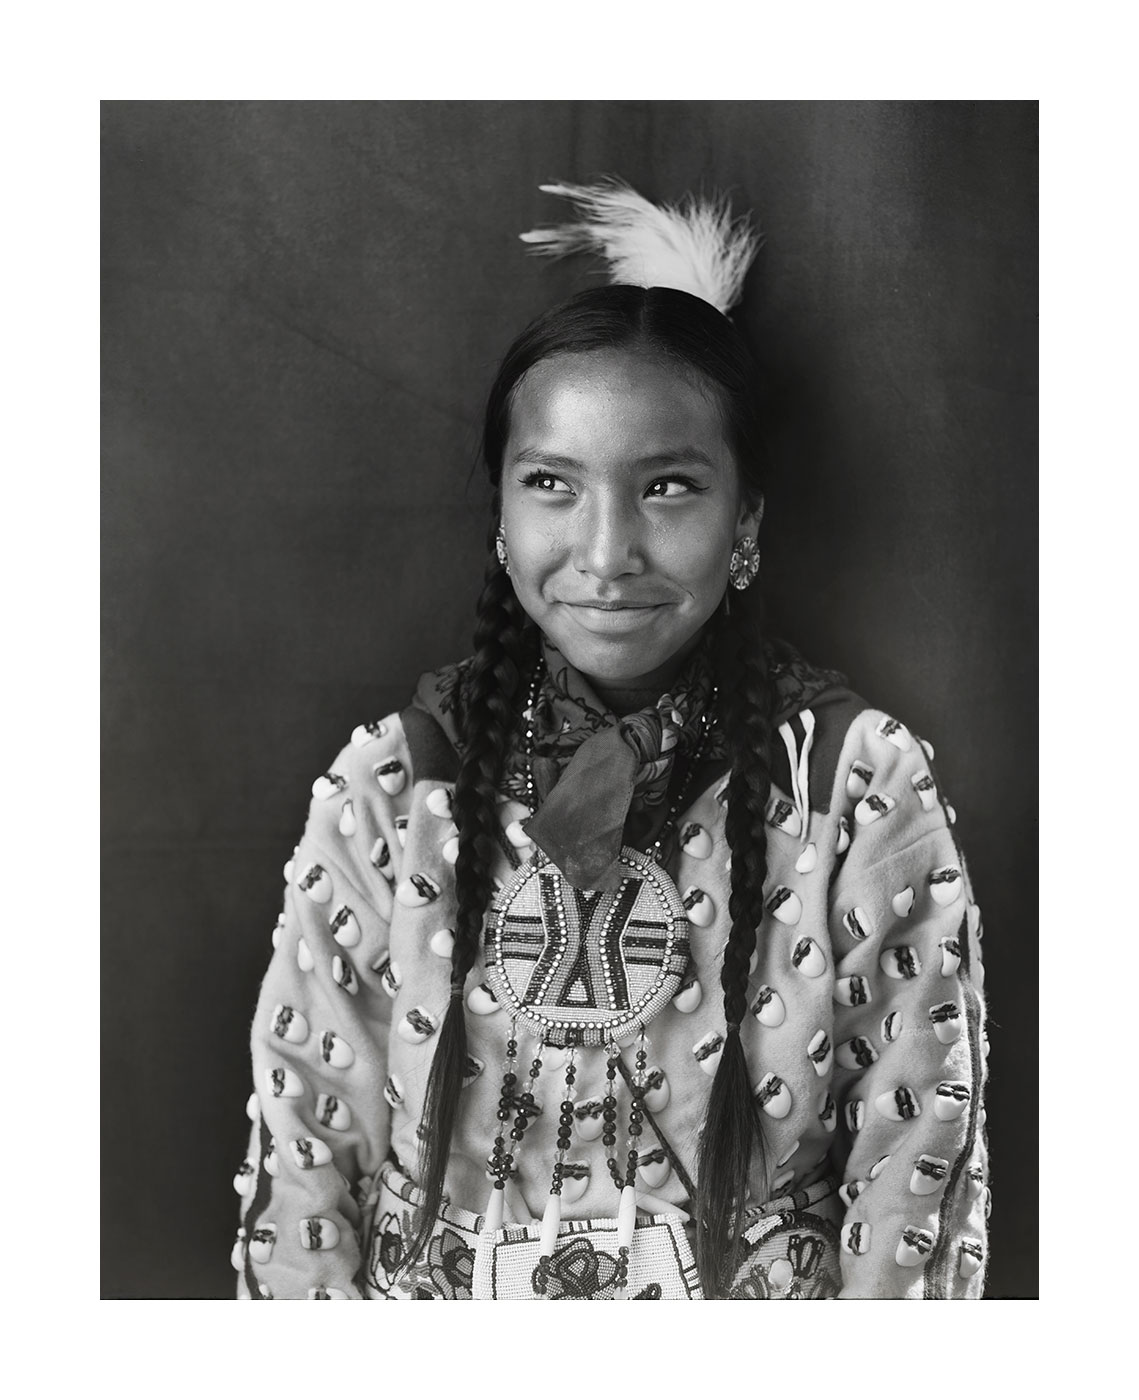 apsaalooke-crow-indian-girl-portrait-with-smiling